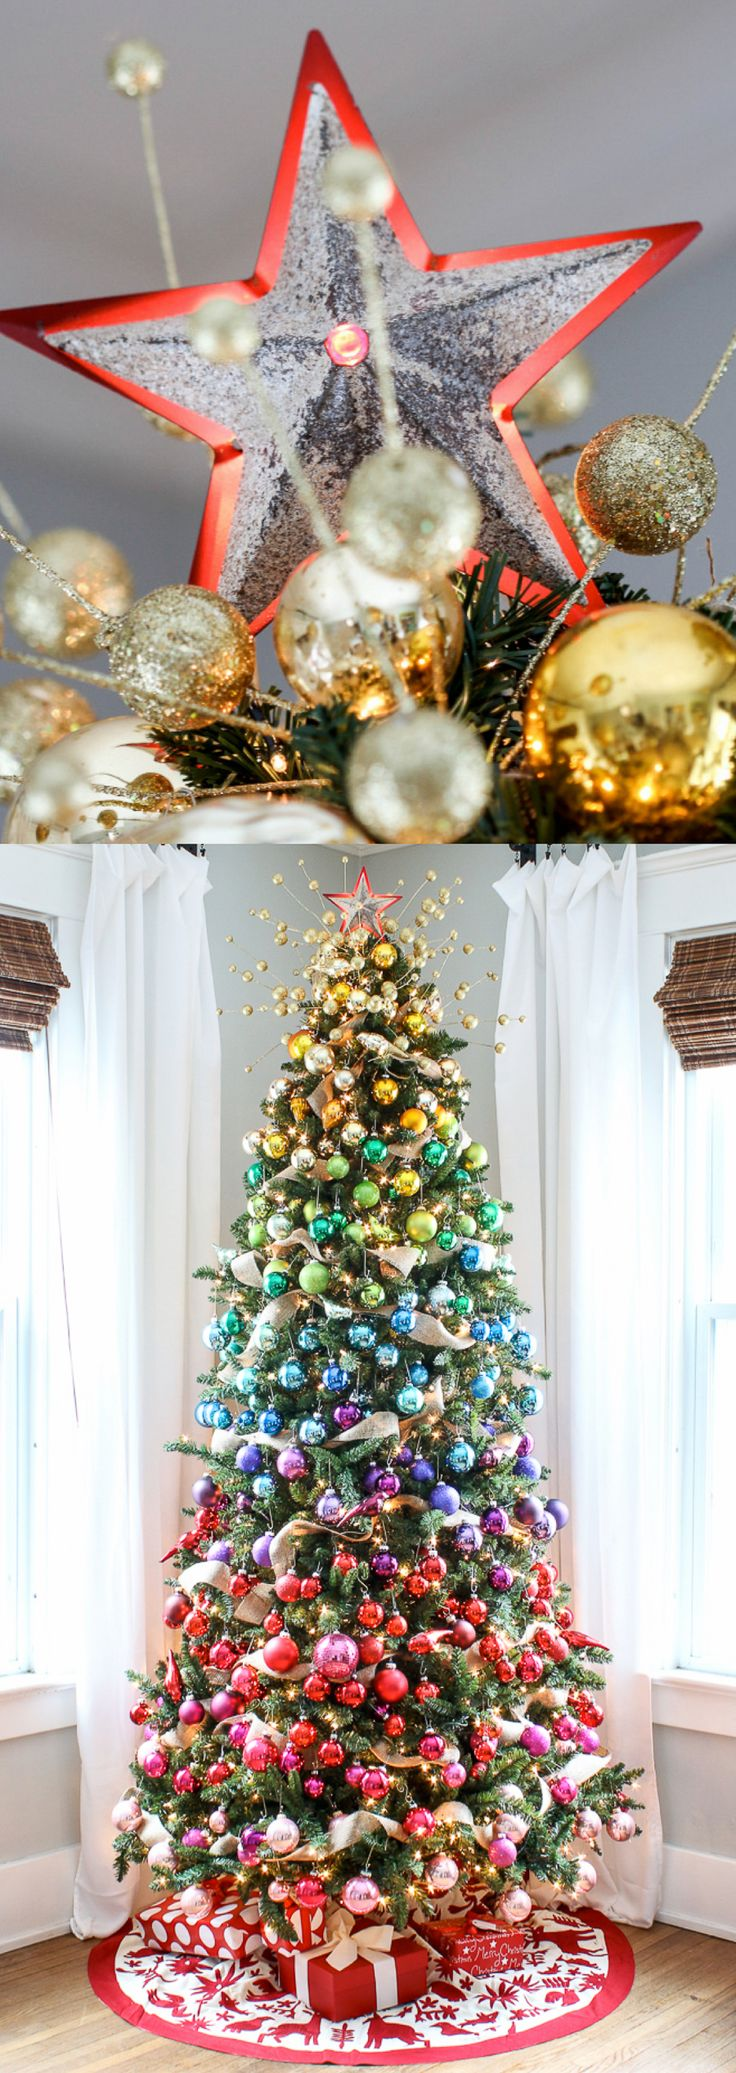 Describing beautiful christmas decorations - Best 25 Unique Christmas Trees Ideas On Pinterest Alternative Christmas Tree Unique Christmas Decorations And Xmas Tree